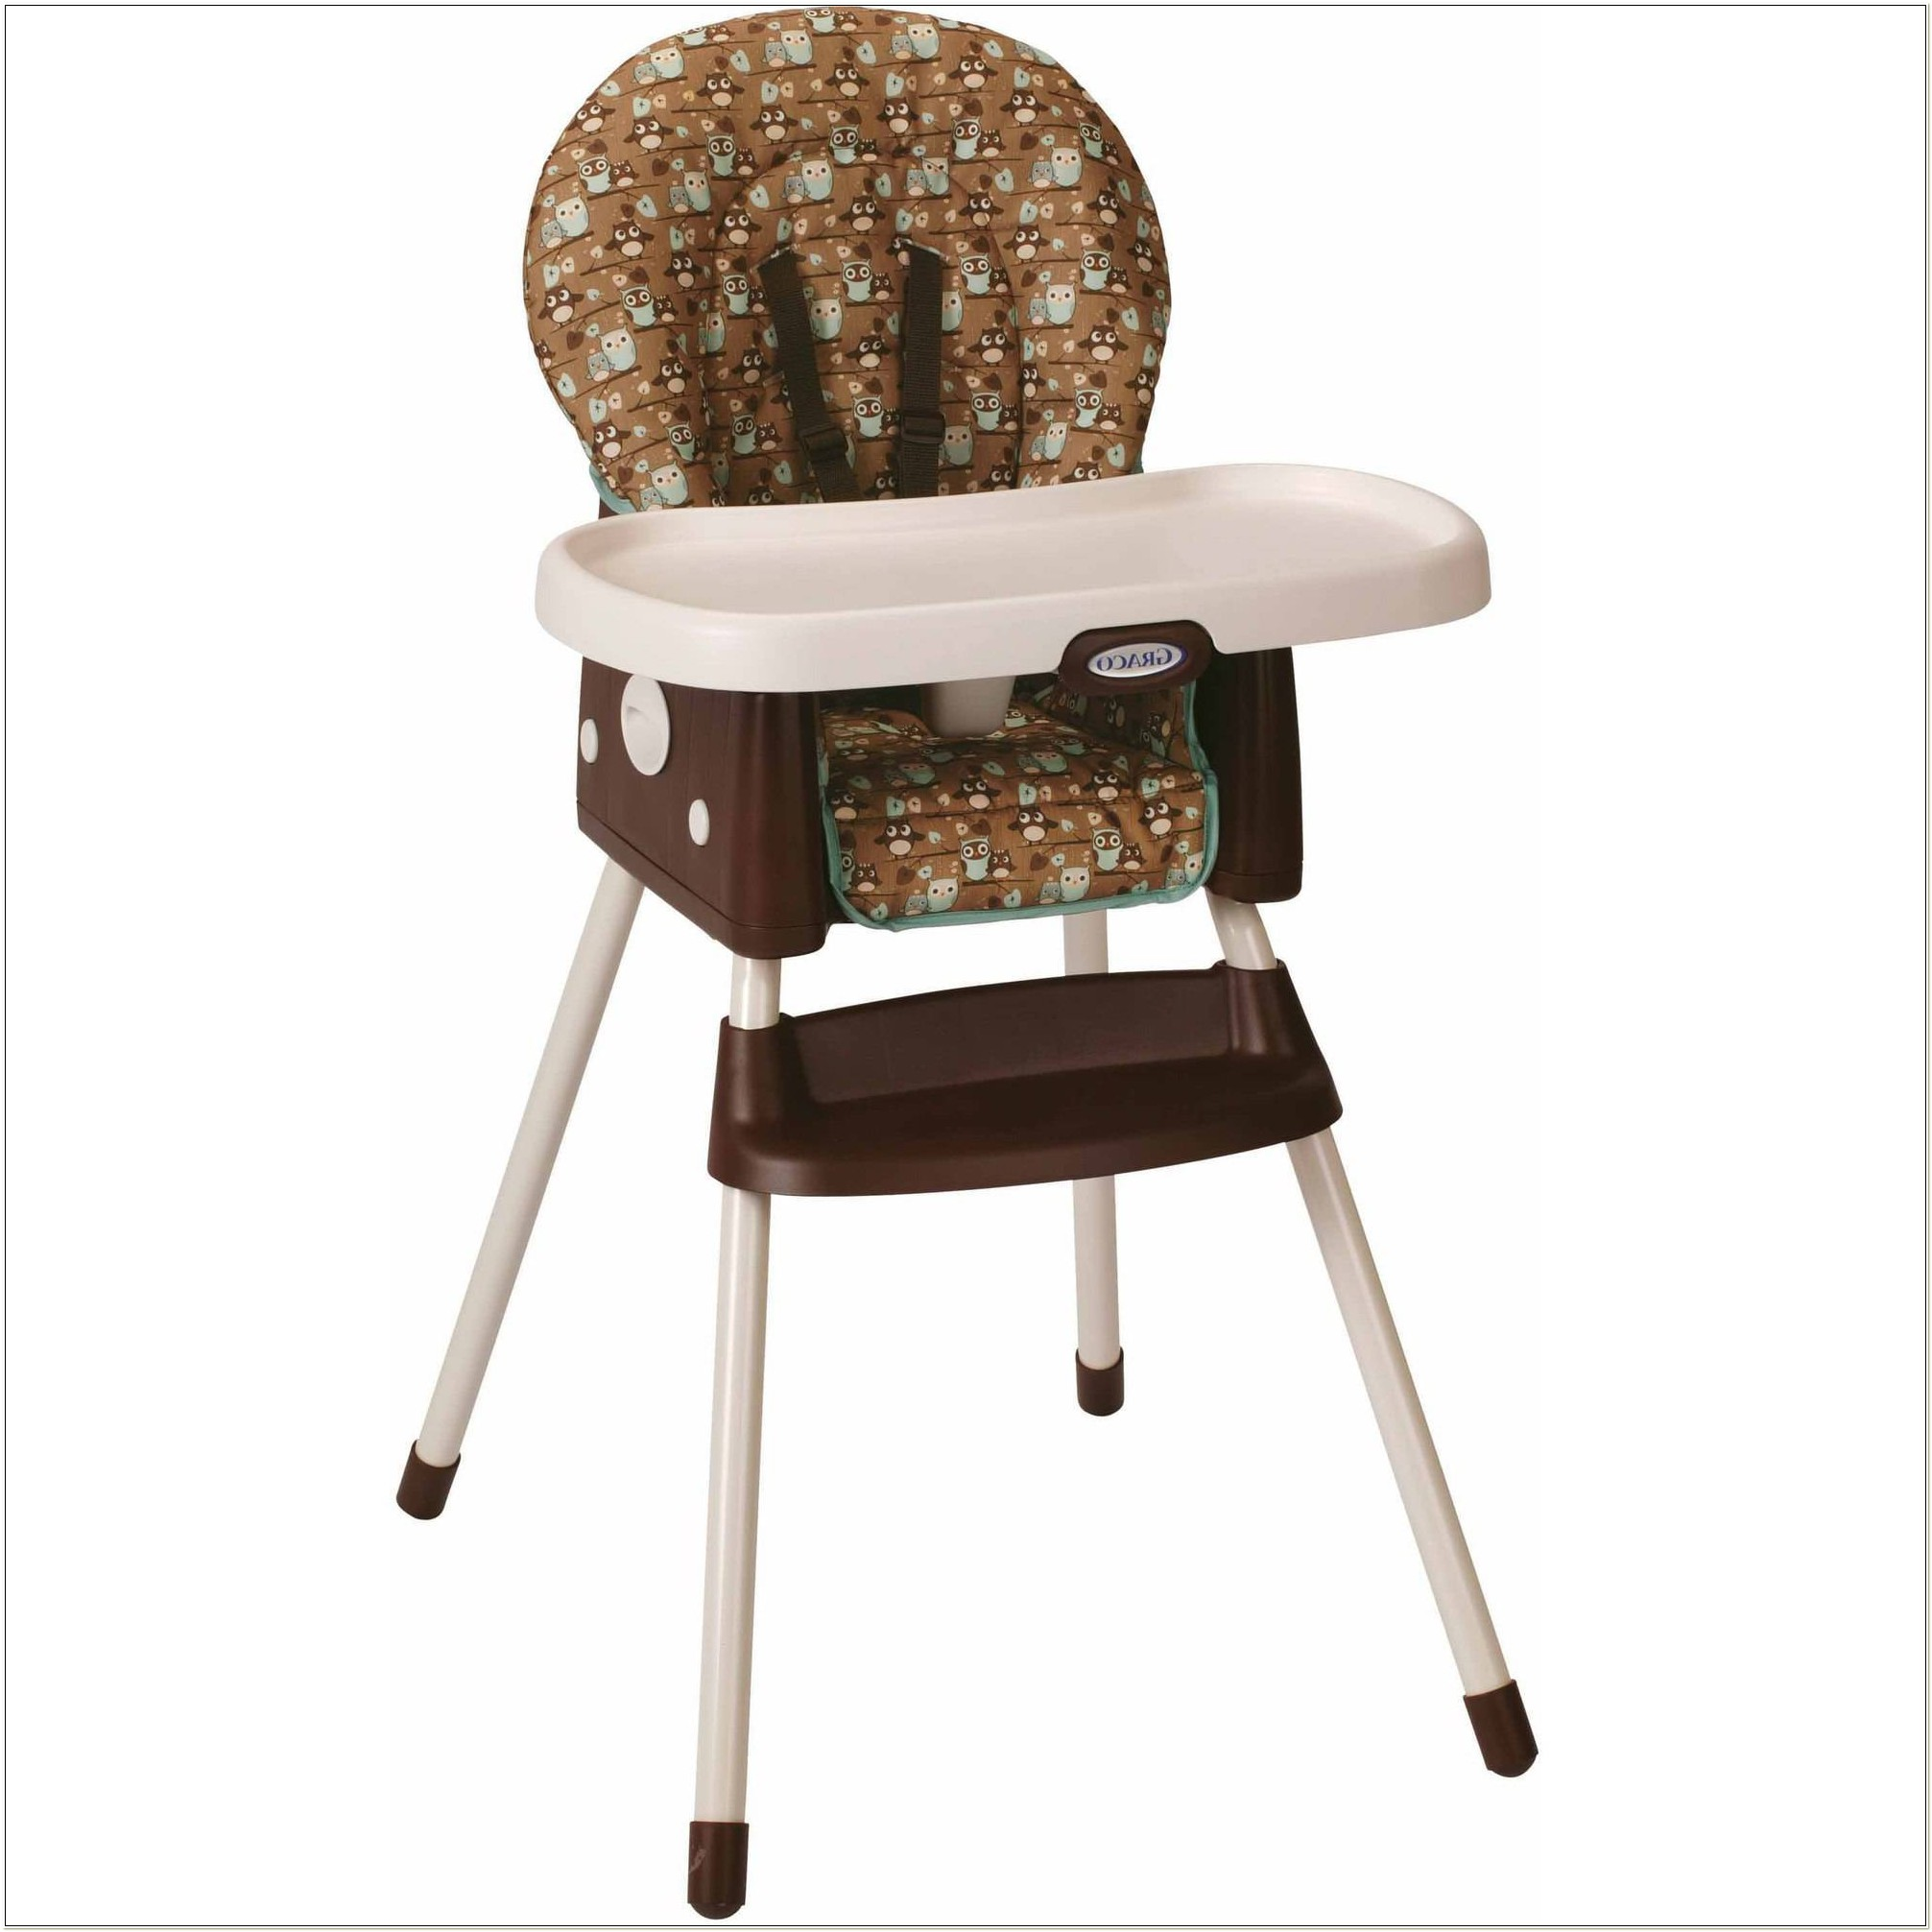 Graco Simpleswitch High Chair Little Hoot